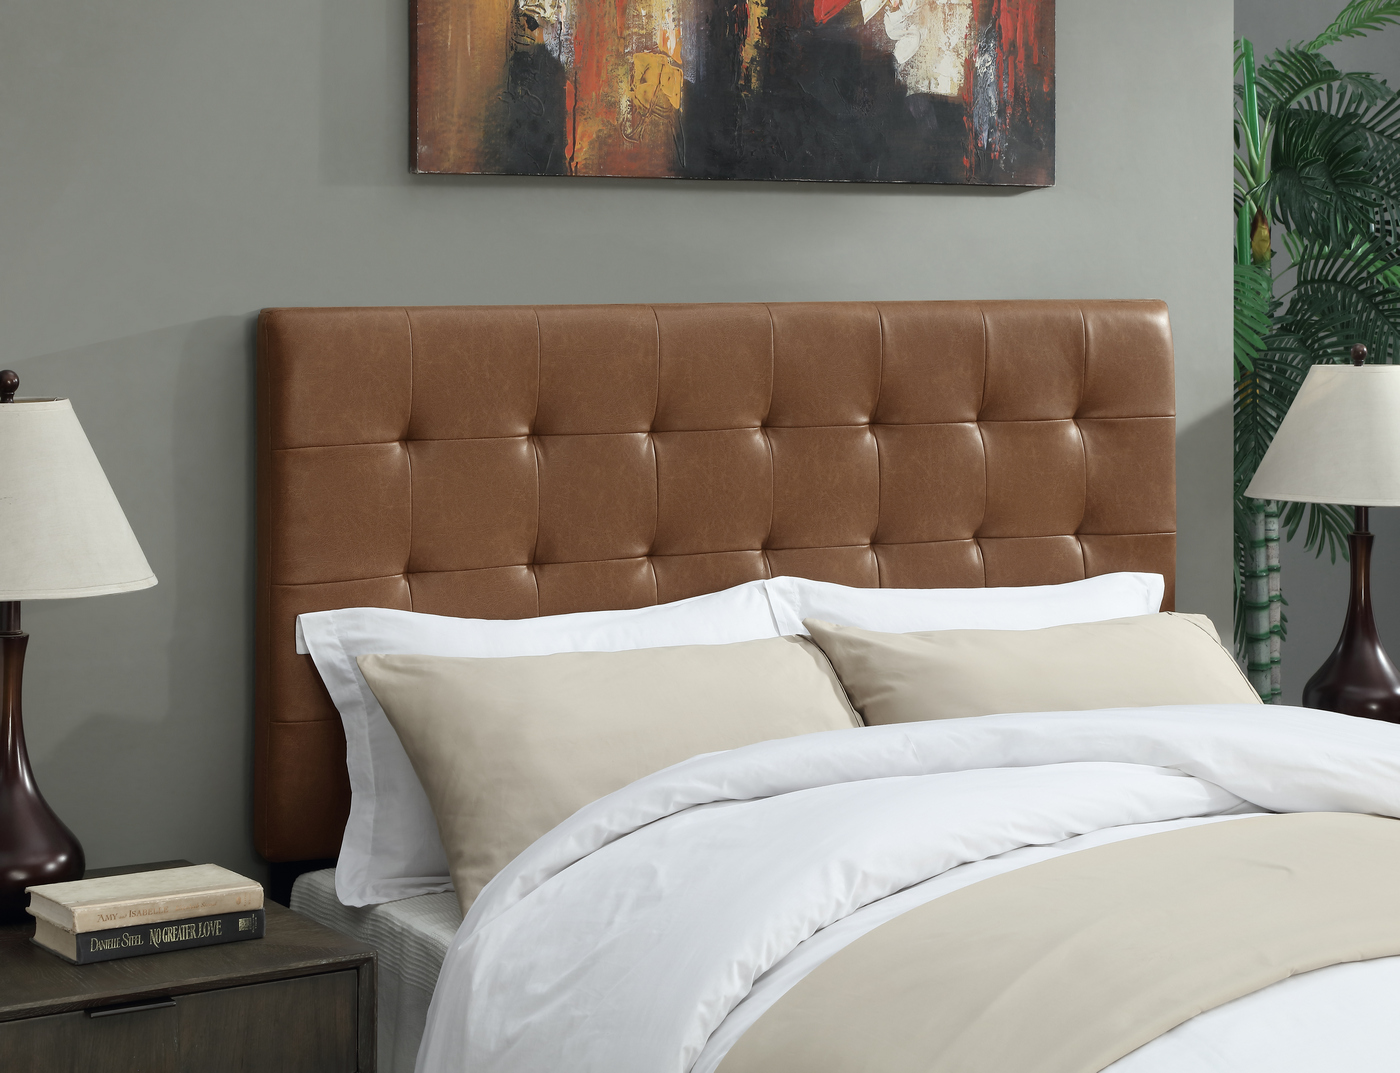 Wilburton Faux Leather Biscuit Tufted Full/Queen Headboard ... on Cognac Leather Headboard  id=95442